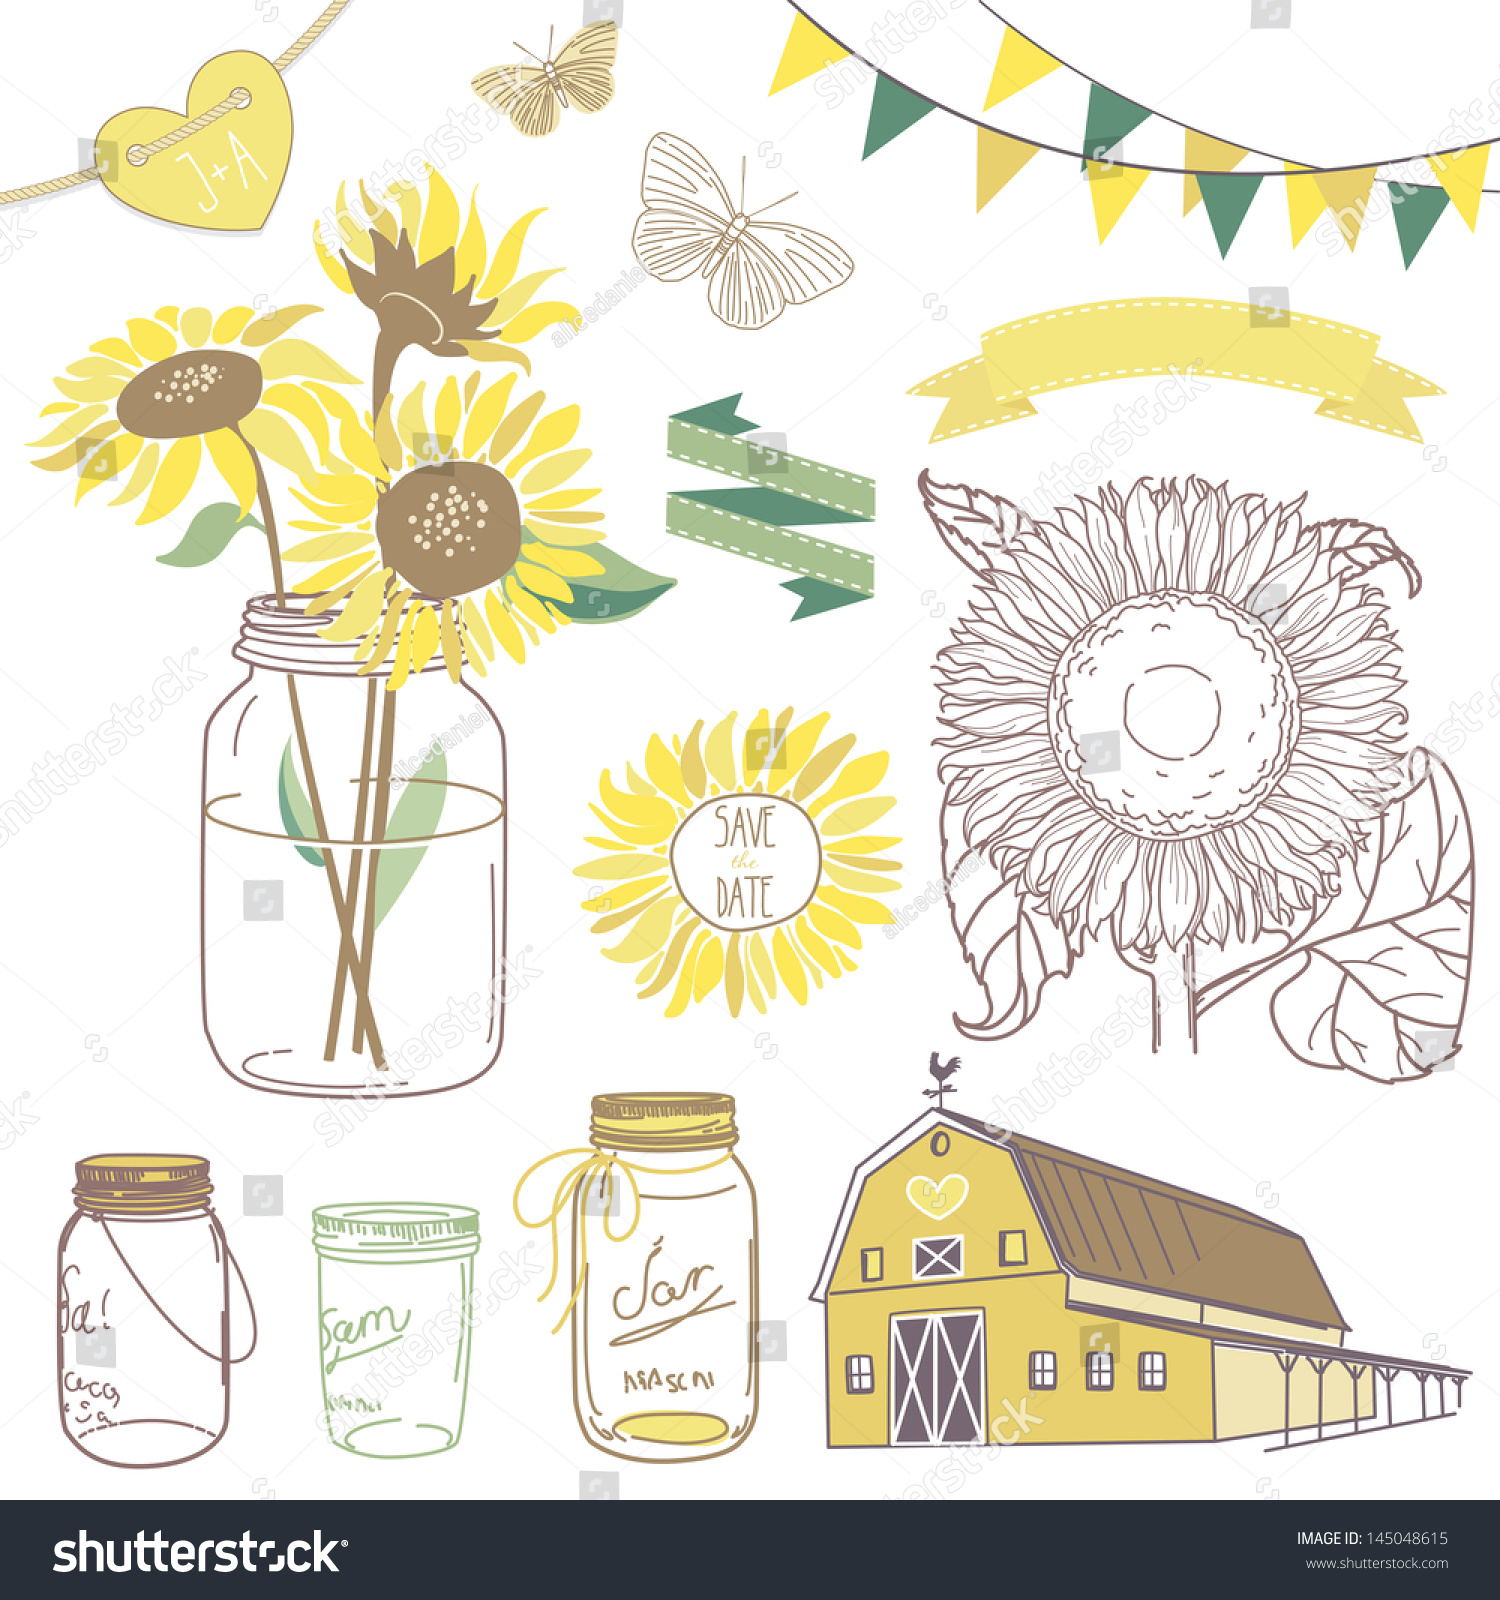 Glass Jars Sunflowers Ribbons Bunting Butterflies And Cute Rustic Barn Ideal